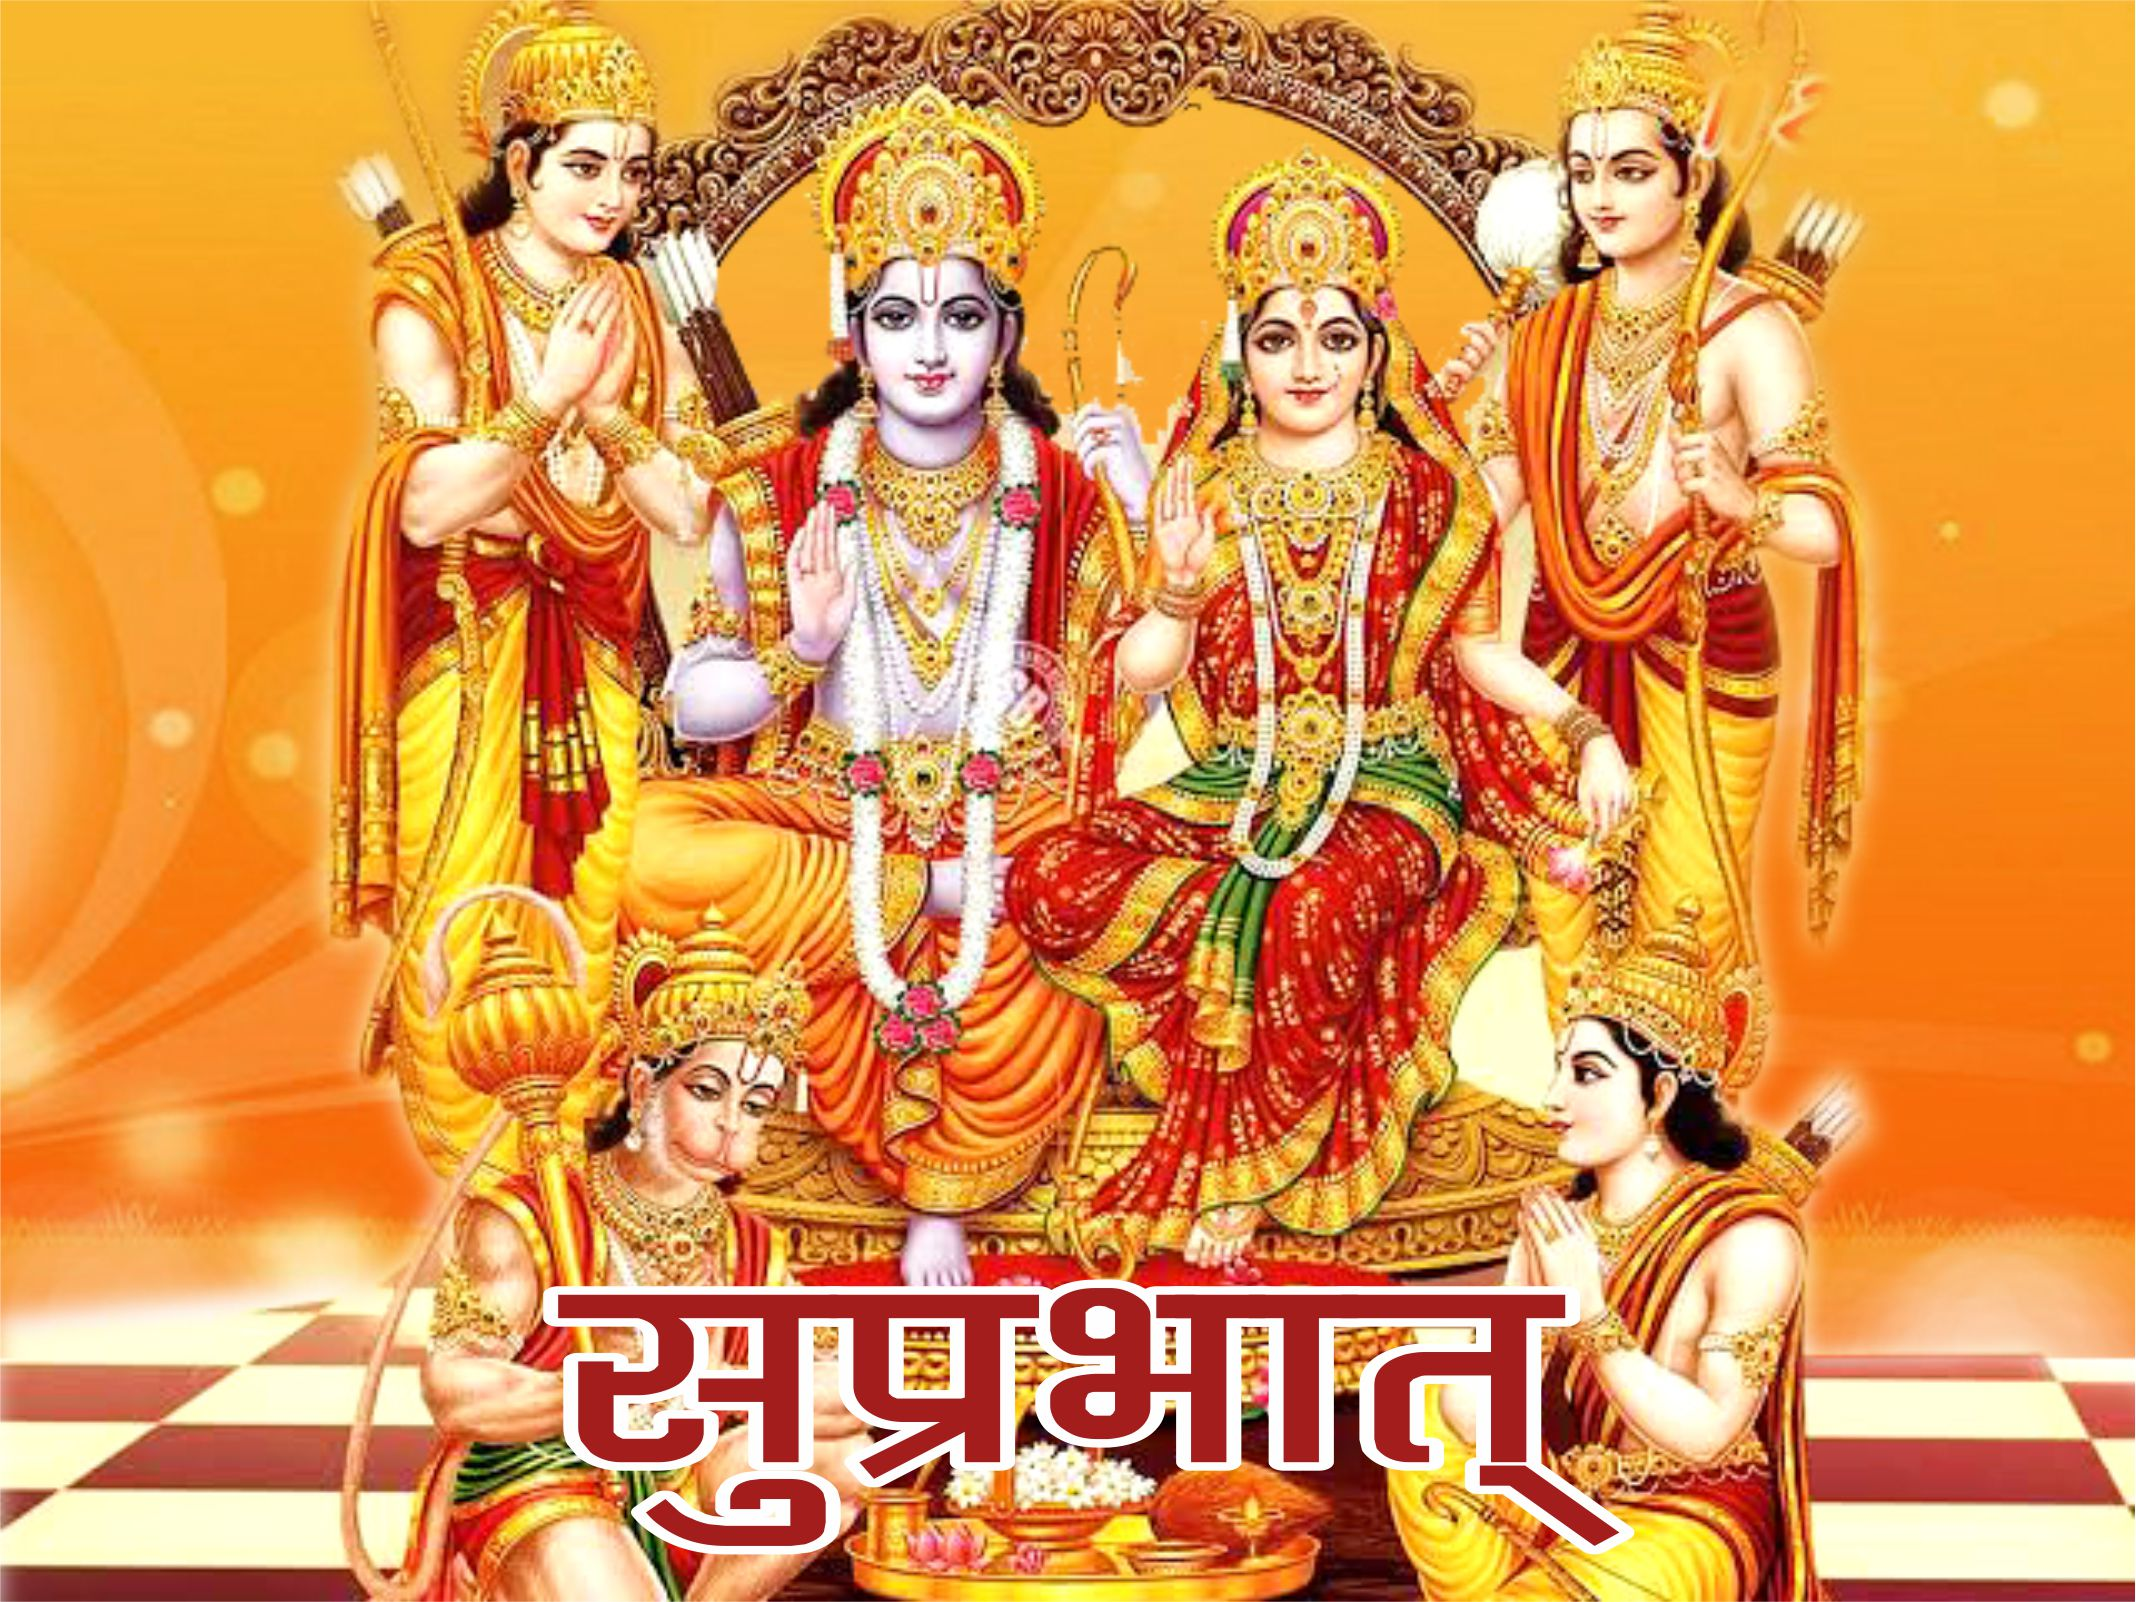 shree ram morning wishes free download images